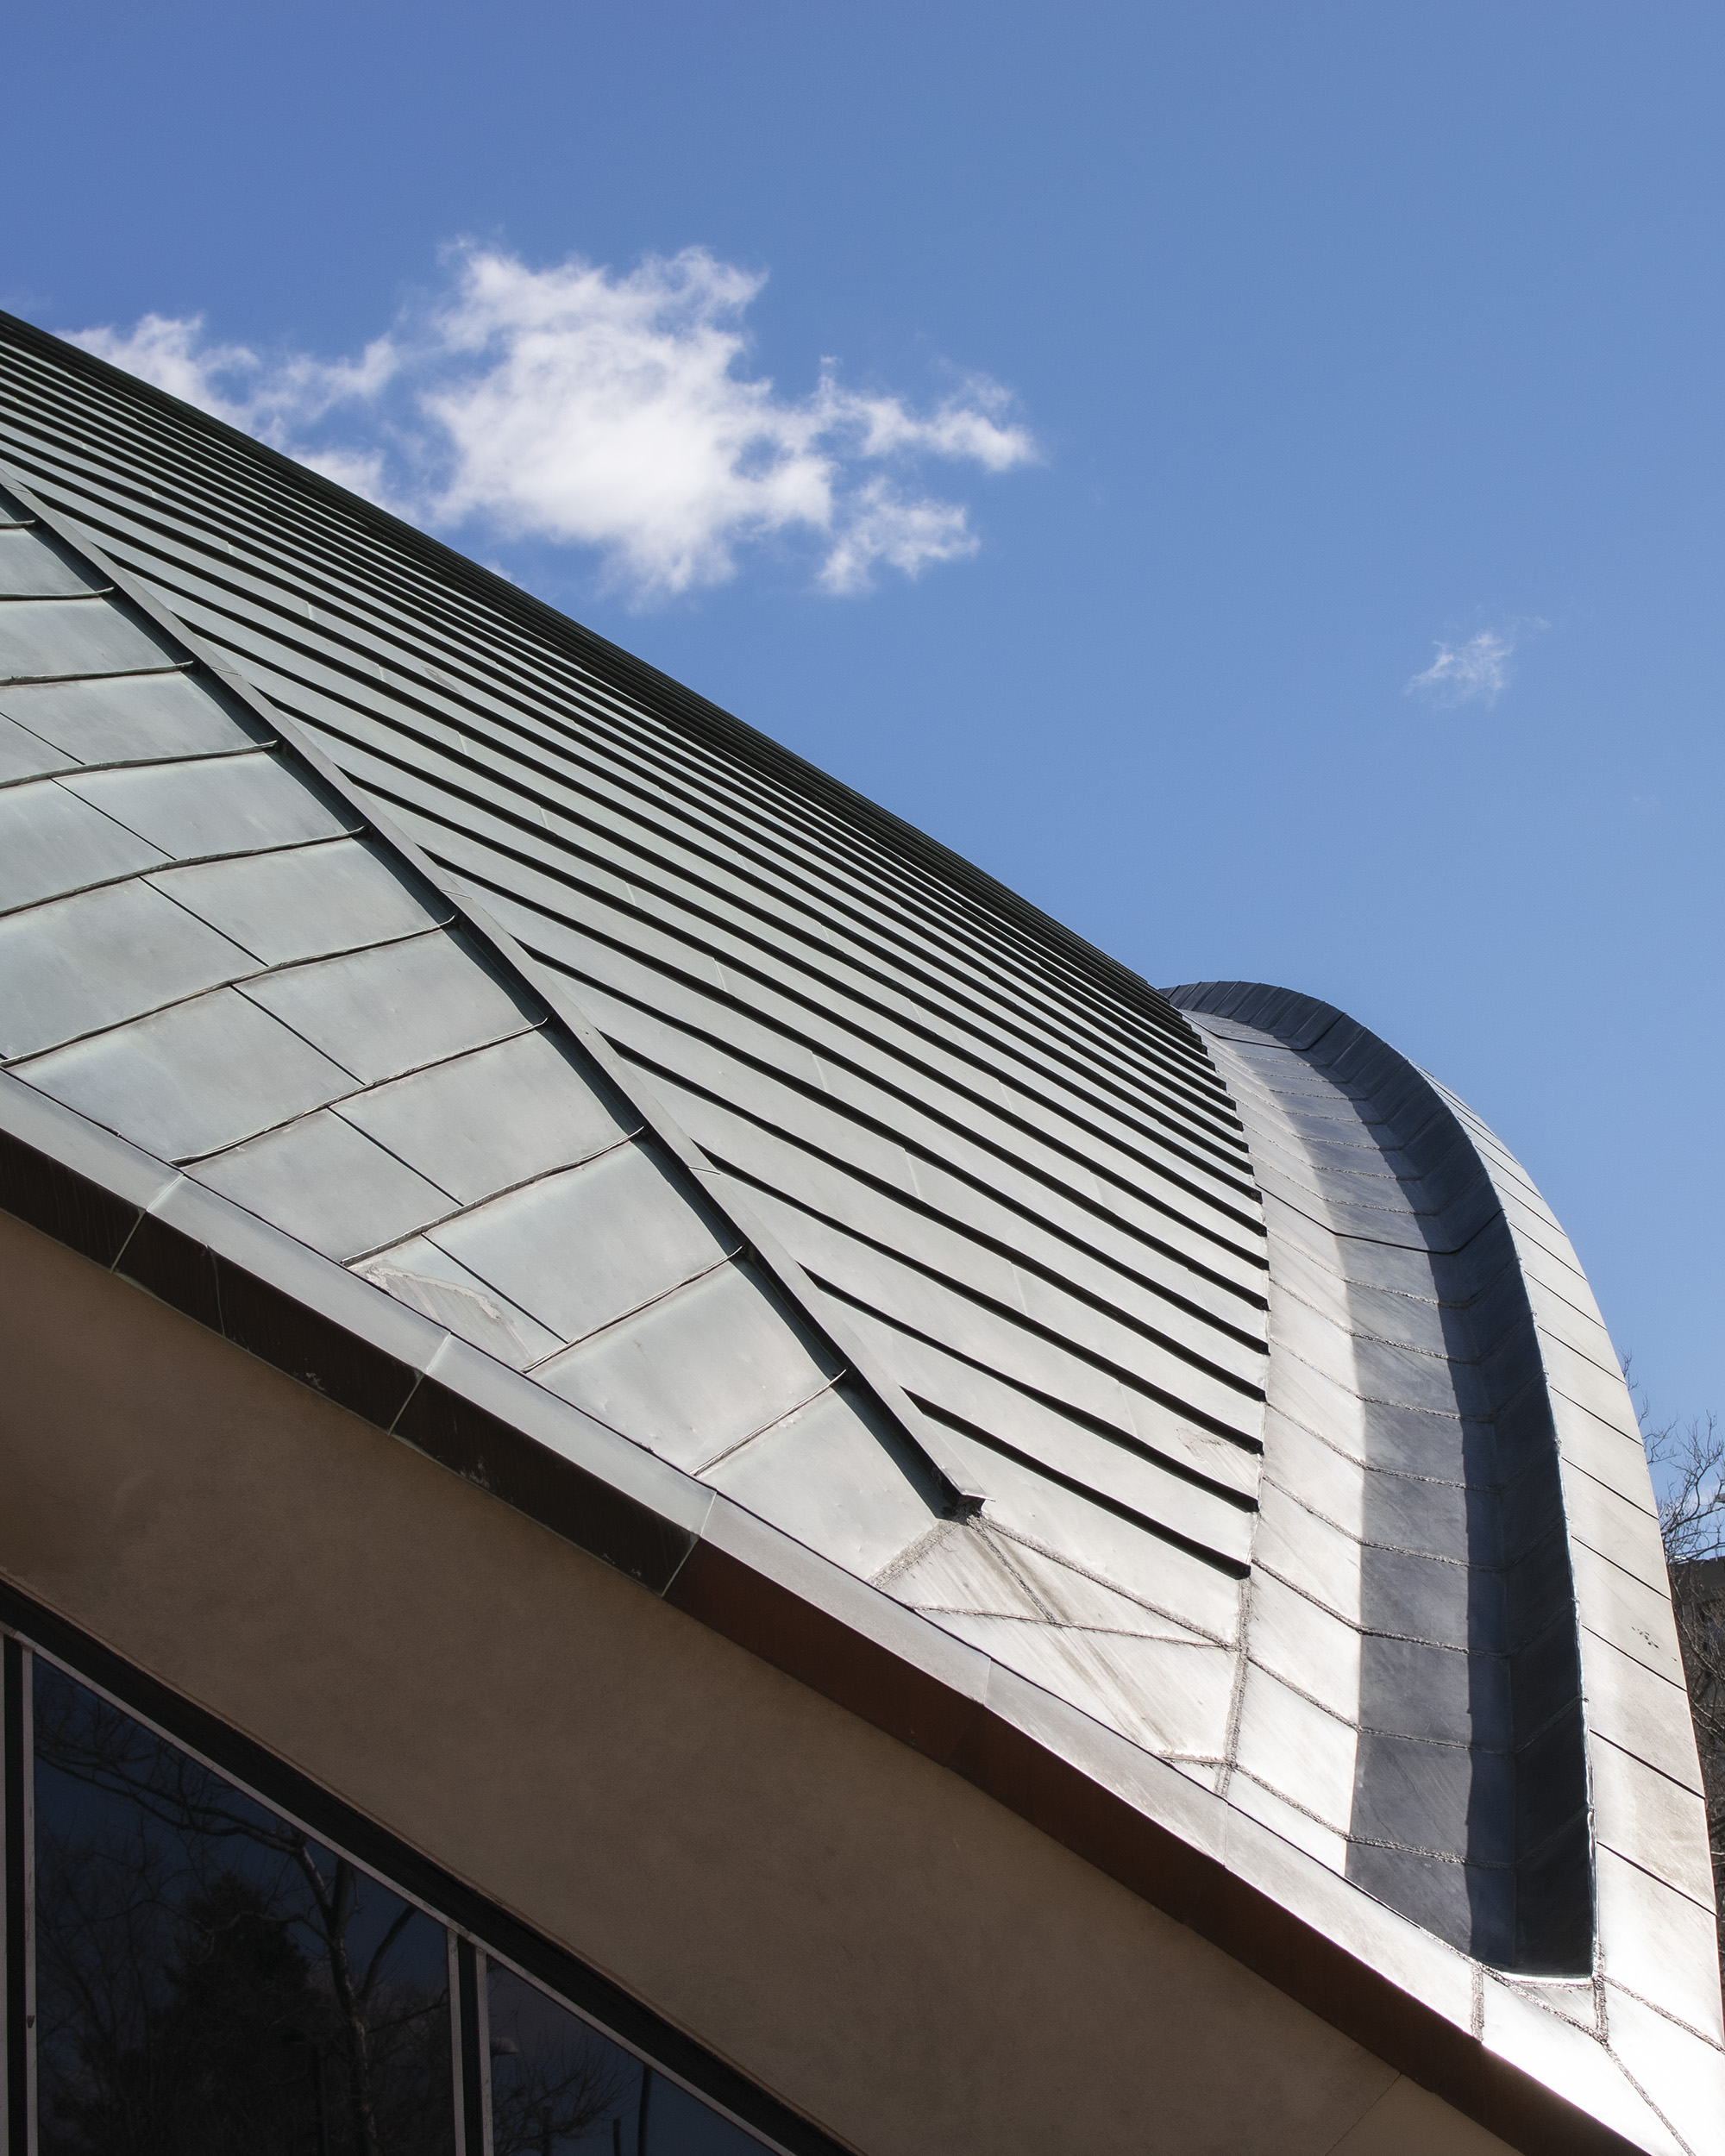 the roof of Kresge Auditorium on a sunny day